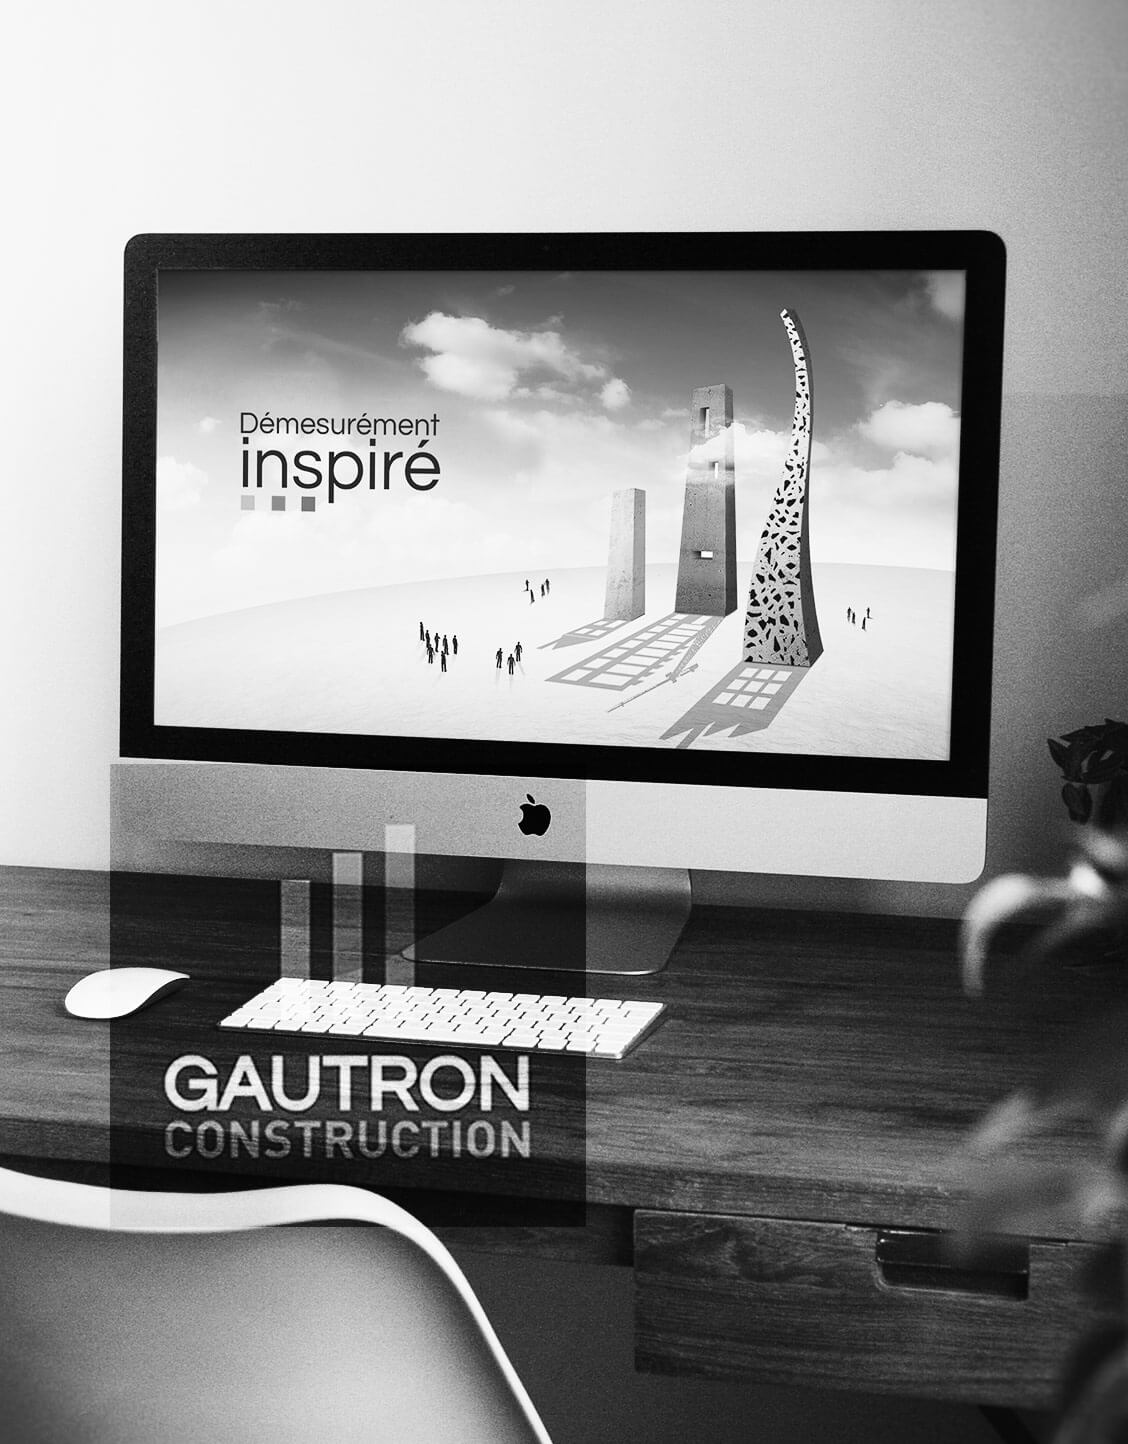 Gautron Construction